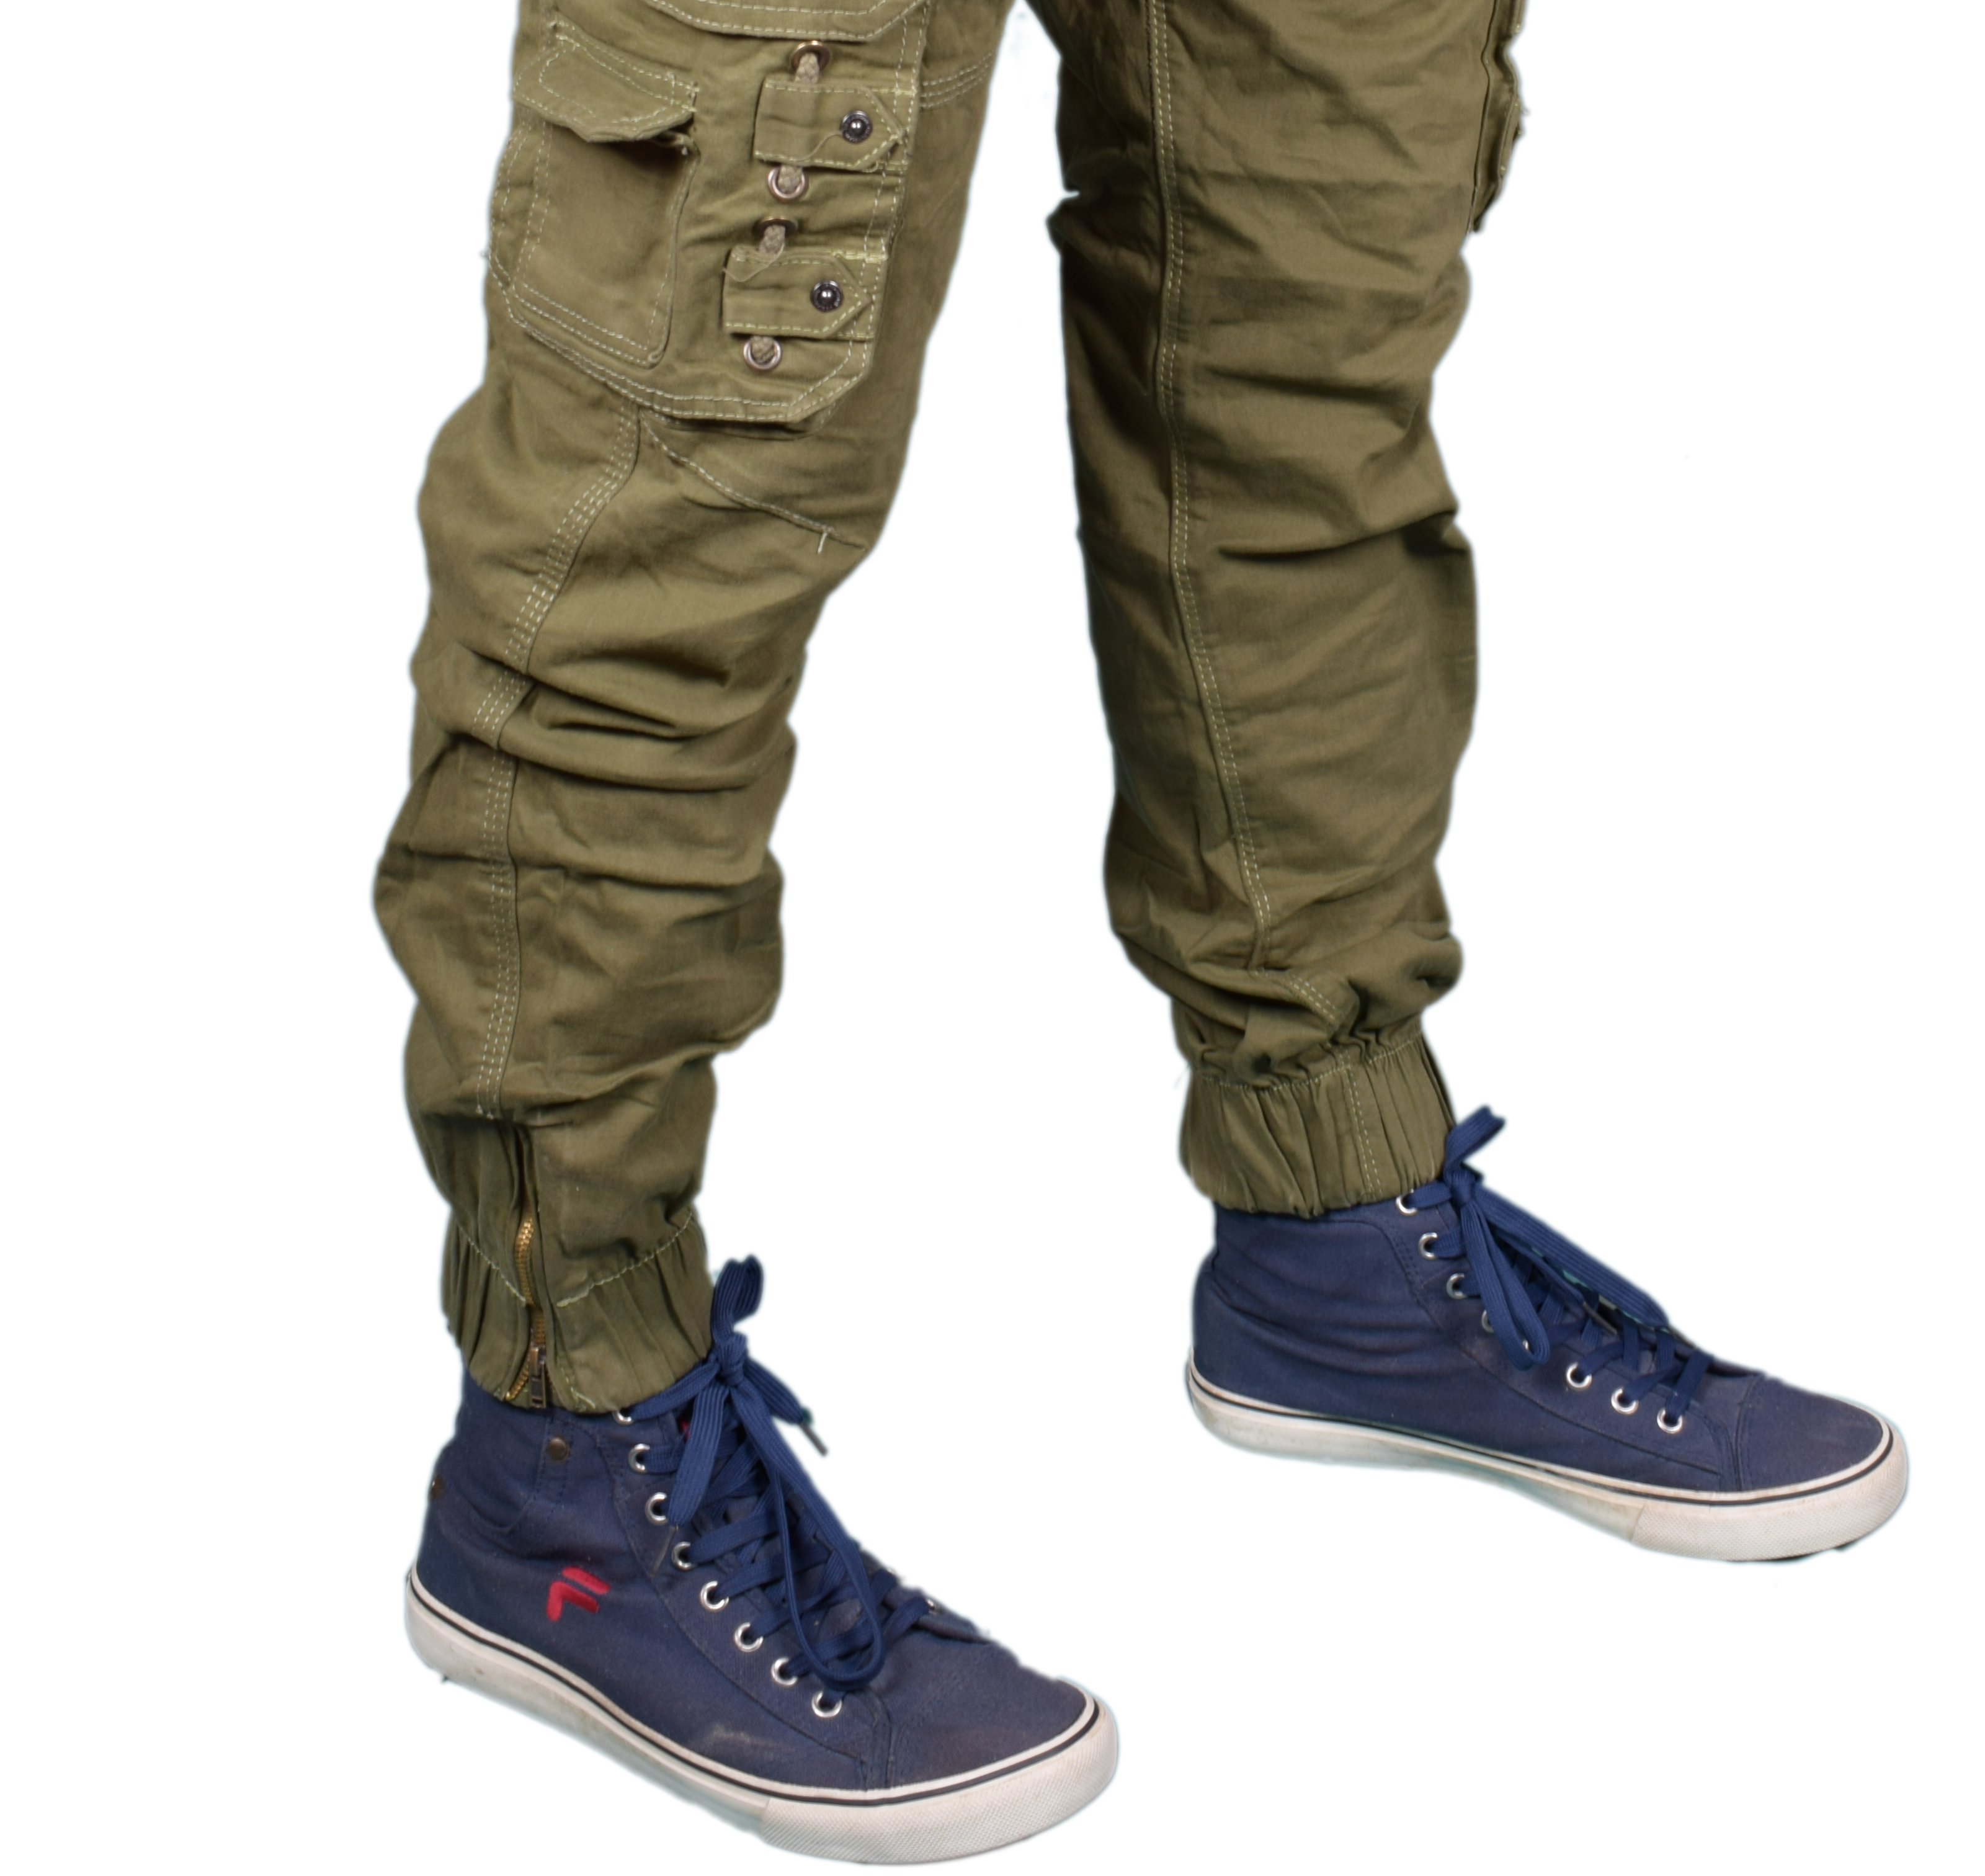 Stretchable Men's Dark Green Cotton Cargo Pants New| Stylist Cotton Solid Relaxed Fit Zipper Cargo Jogger Pants for Men | Comfortable 8 Pockets Zipper Cargo Pants